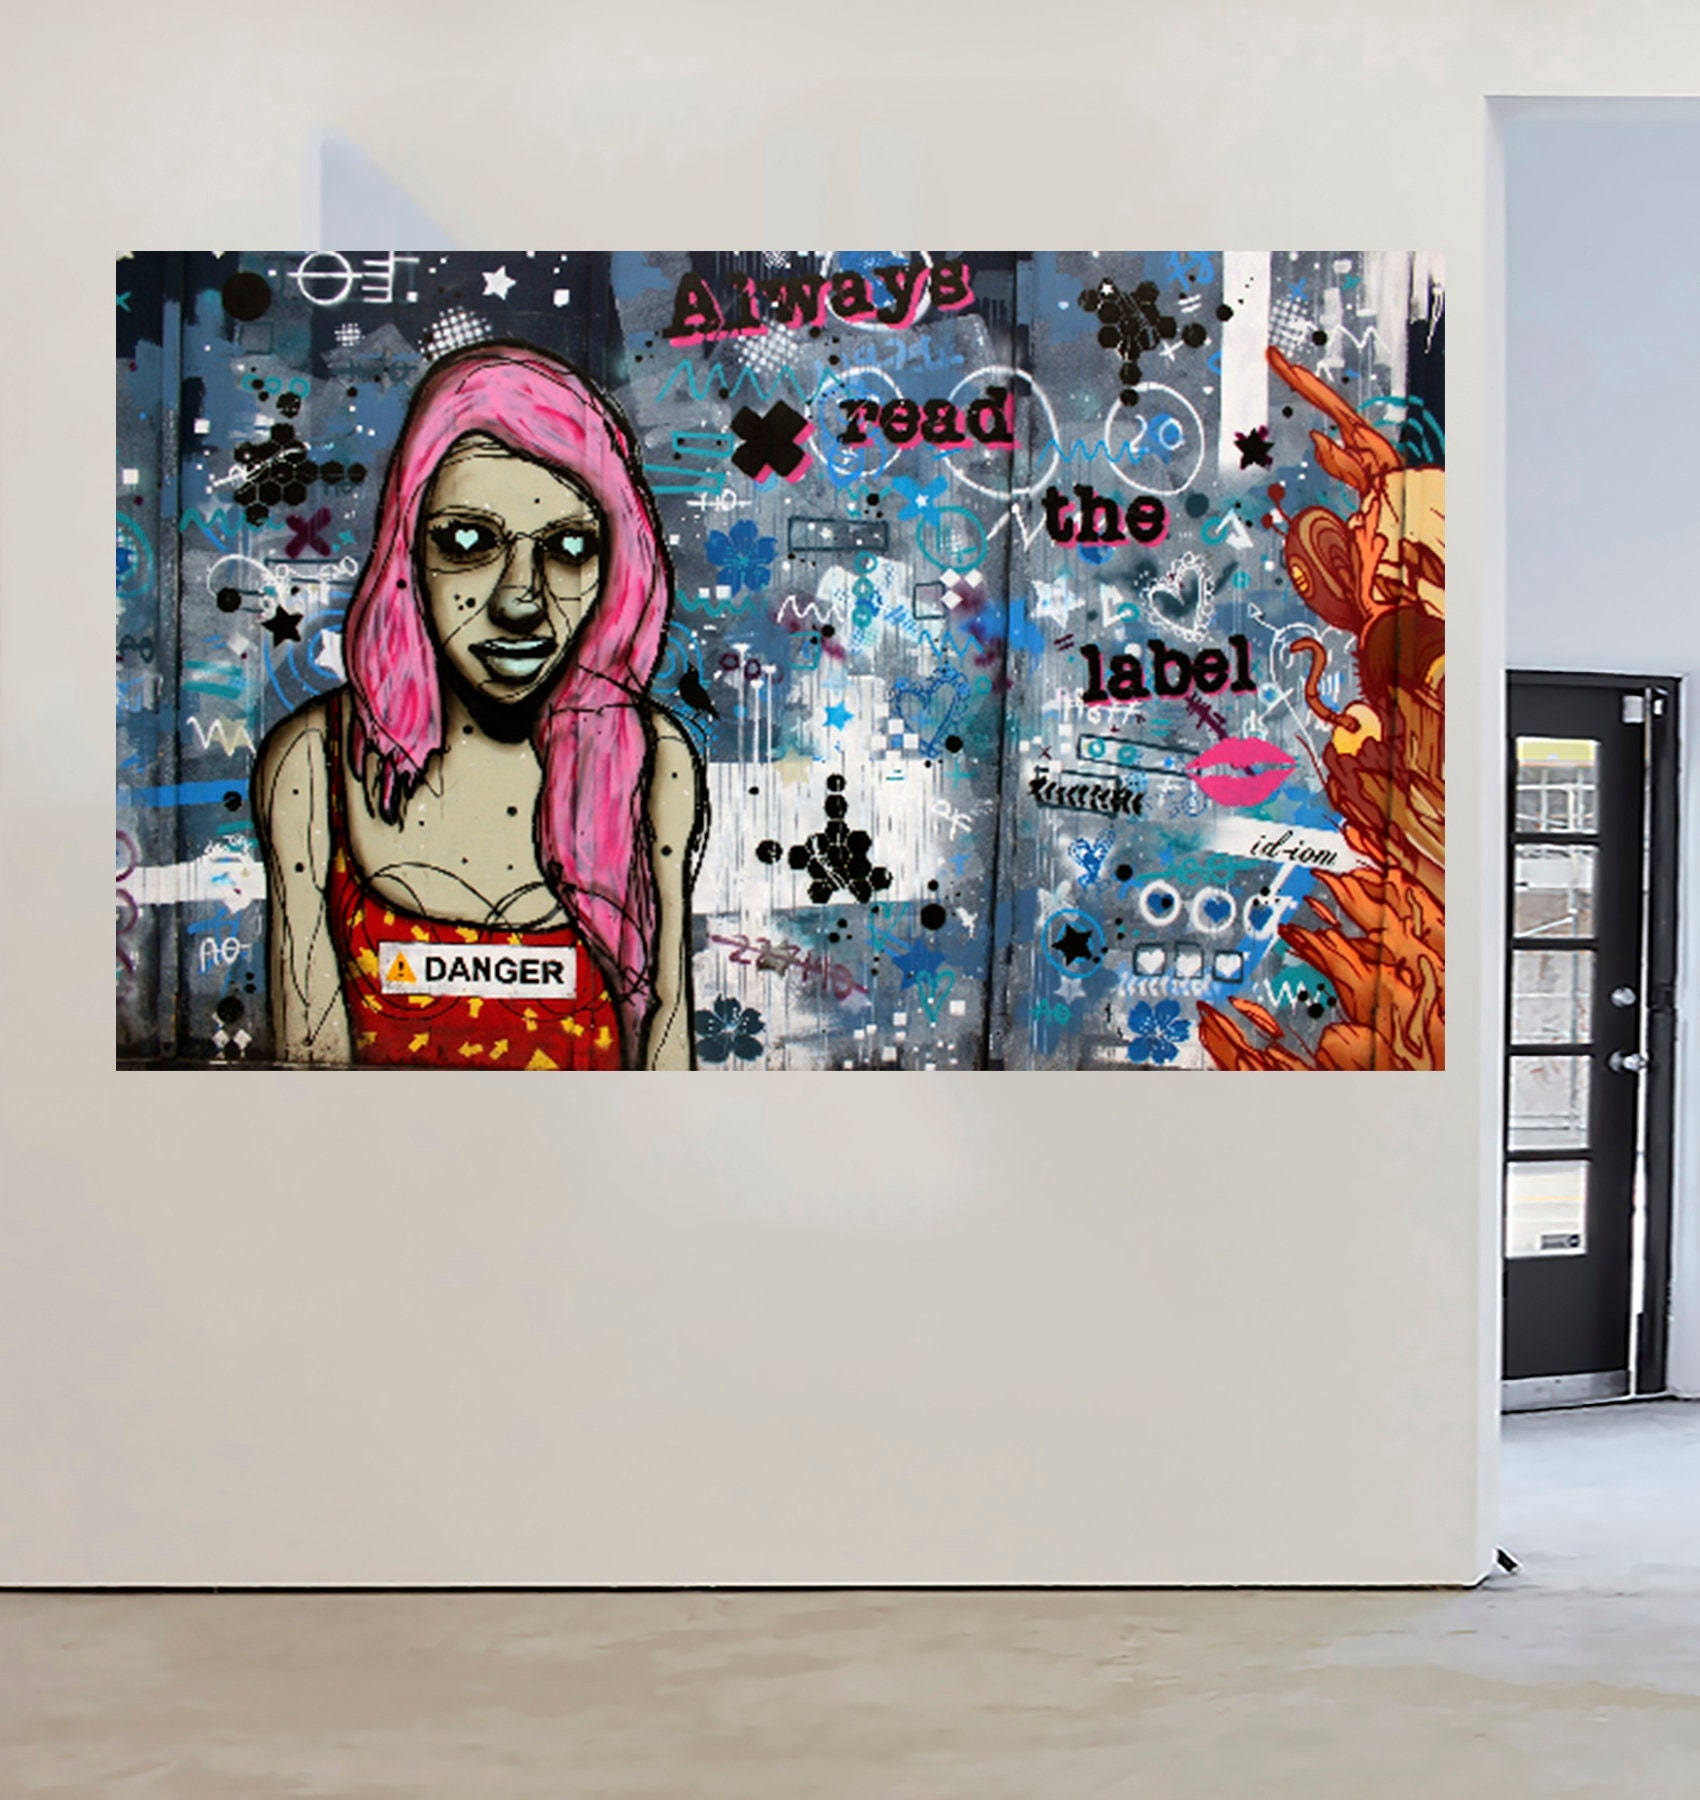 Massive street art graffiti urban canvas print Australia Painting 200cm x 100cm